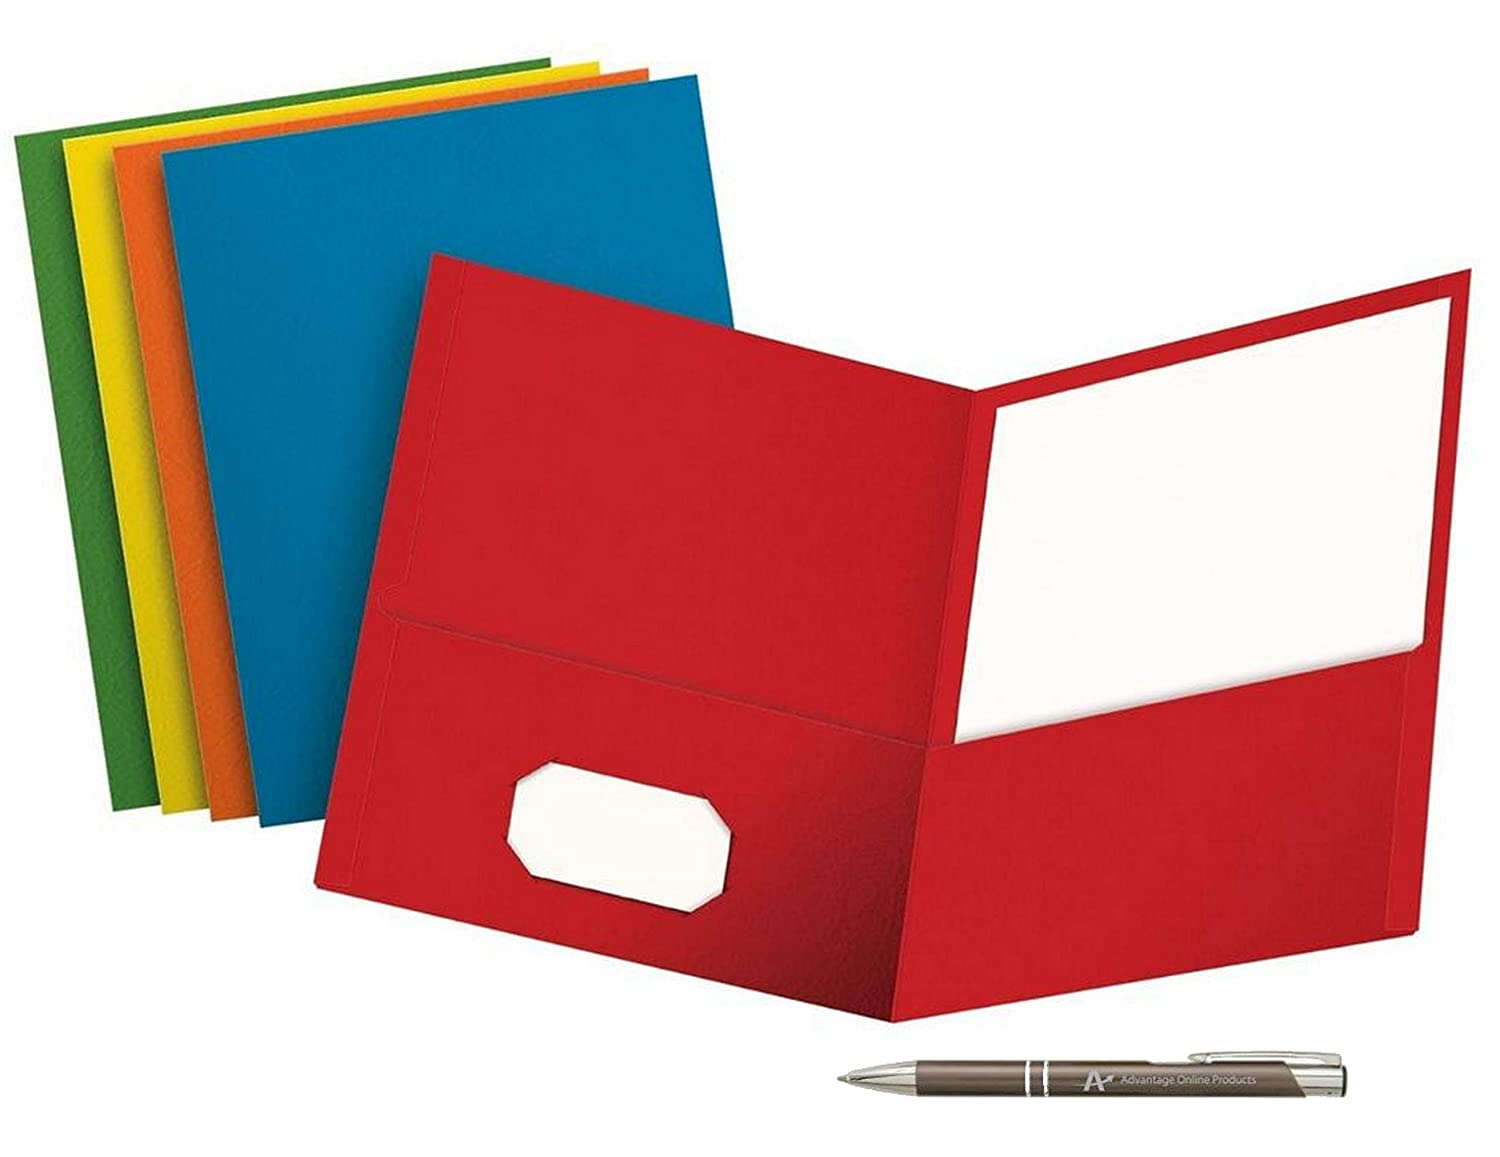 Value Pack of 5 School Grade Twin Pocket Folders; No Fasteners, 5 colors and a Bonus AdvantageOP Black and Chrome Retractable Pen. (Blue, Green, Purple, Red, Yellow) Oxford